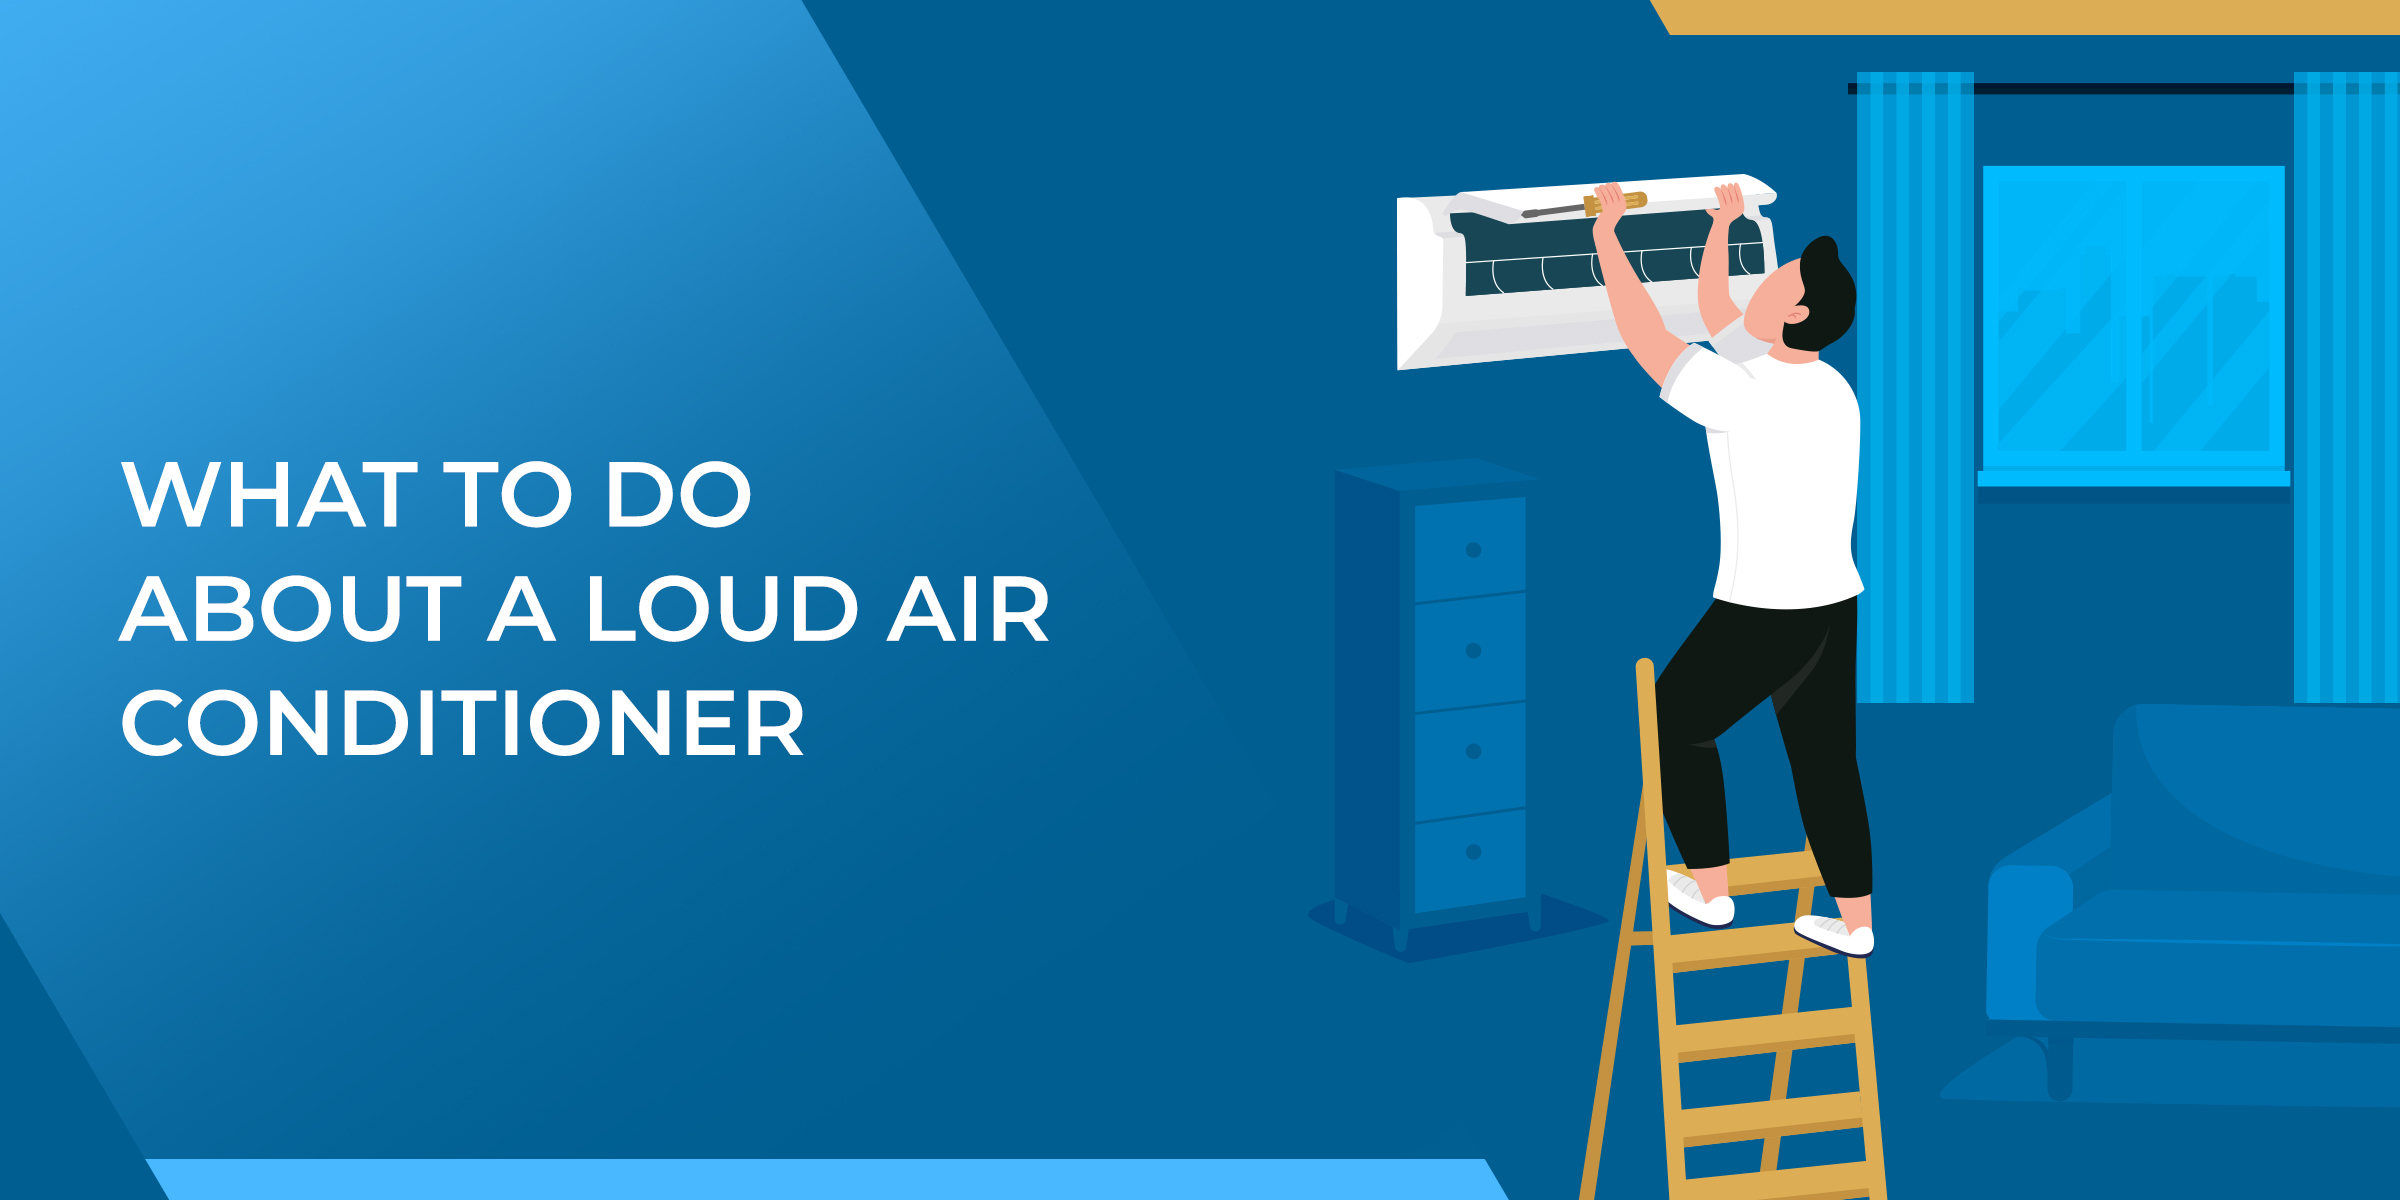 What To Do About a Loud Air Conditioner